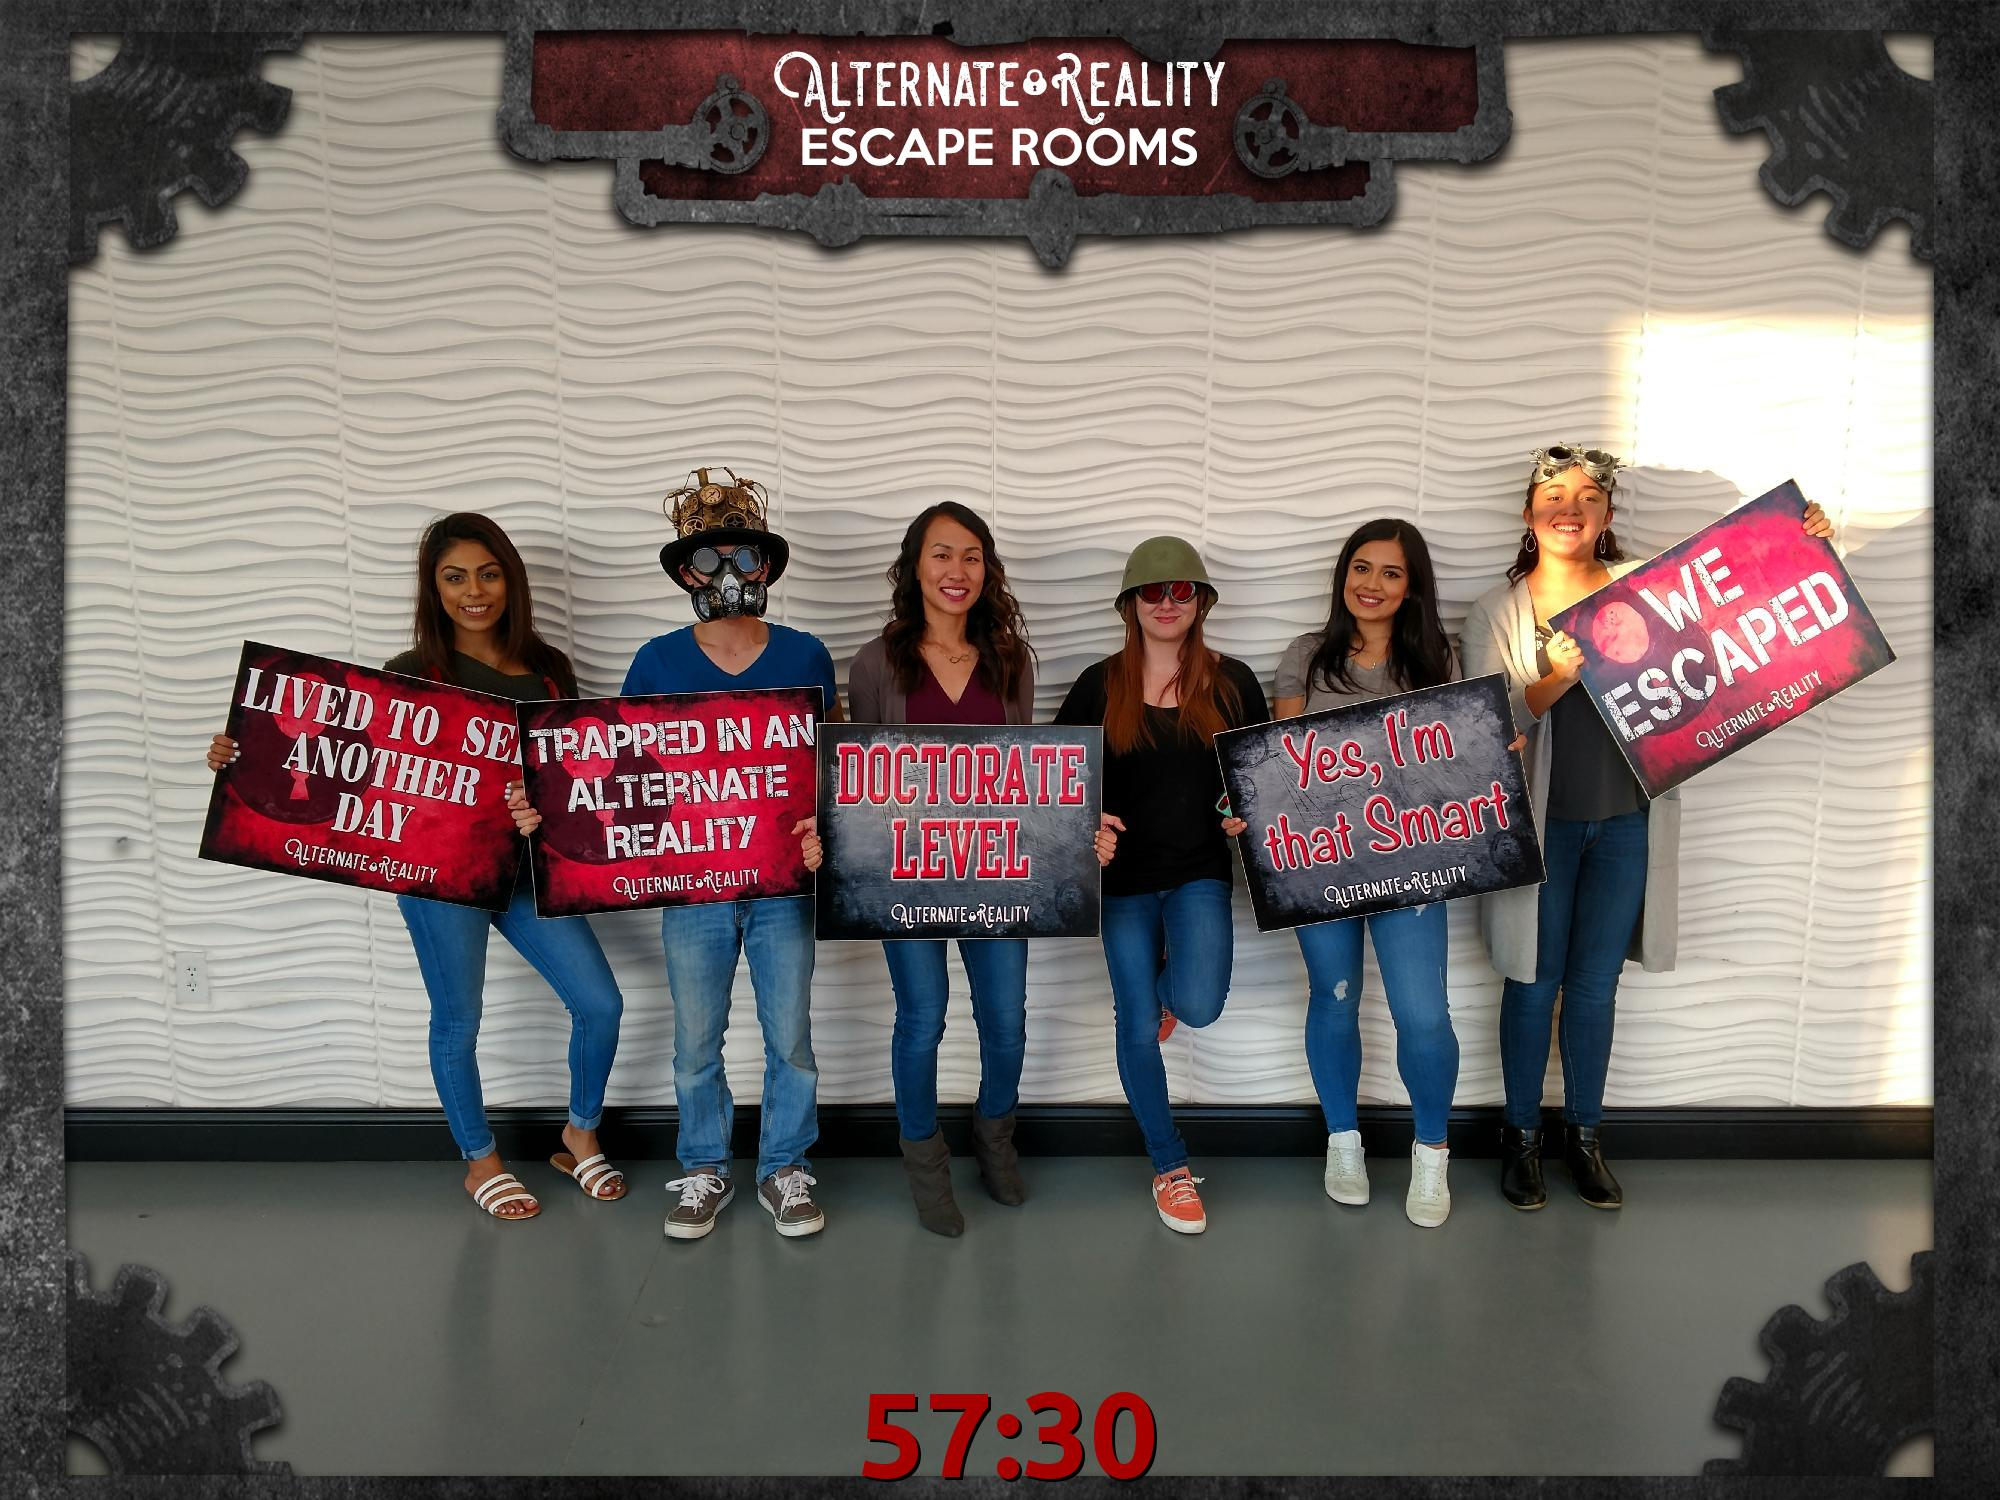 Clarity Escape Room